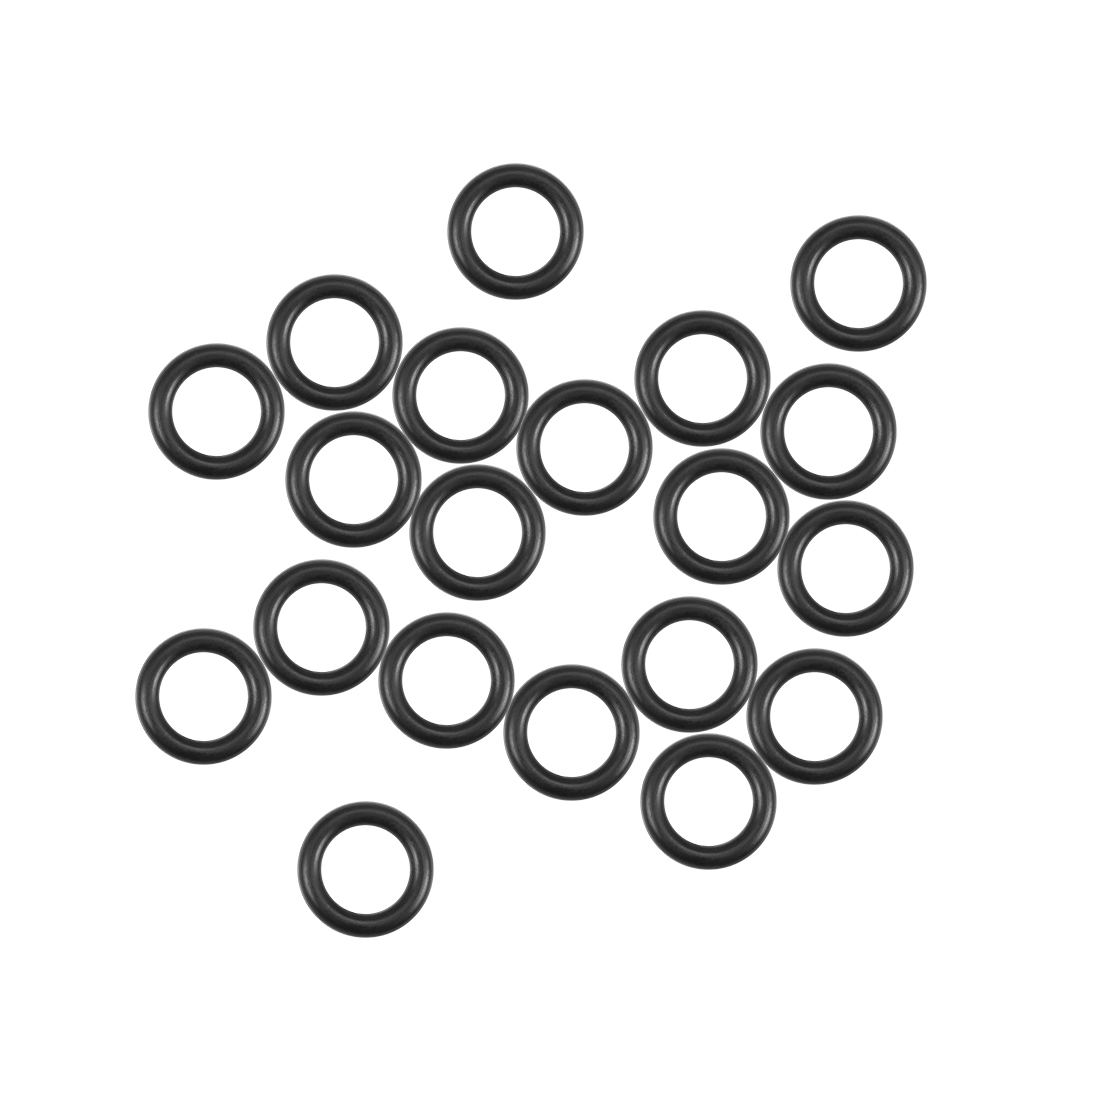 O-Rings Nitrile Rubber 6mm x 9.6mm x 1.8mm Round Seal Gasket 20 Pcs